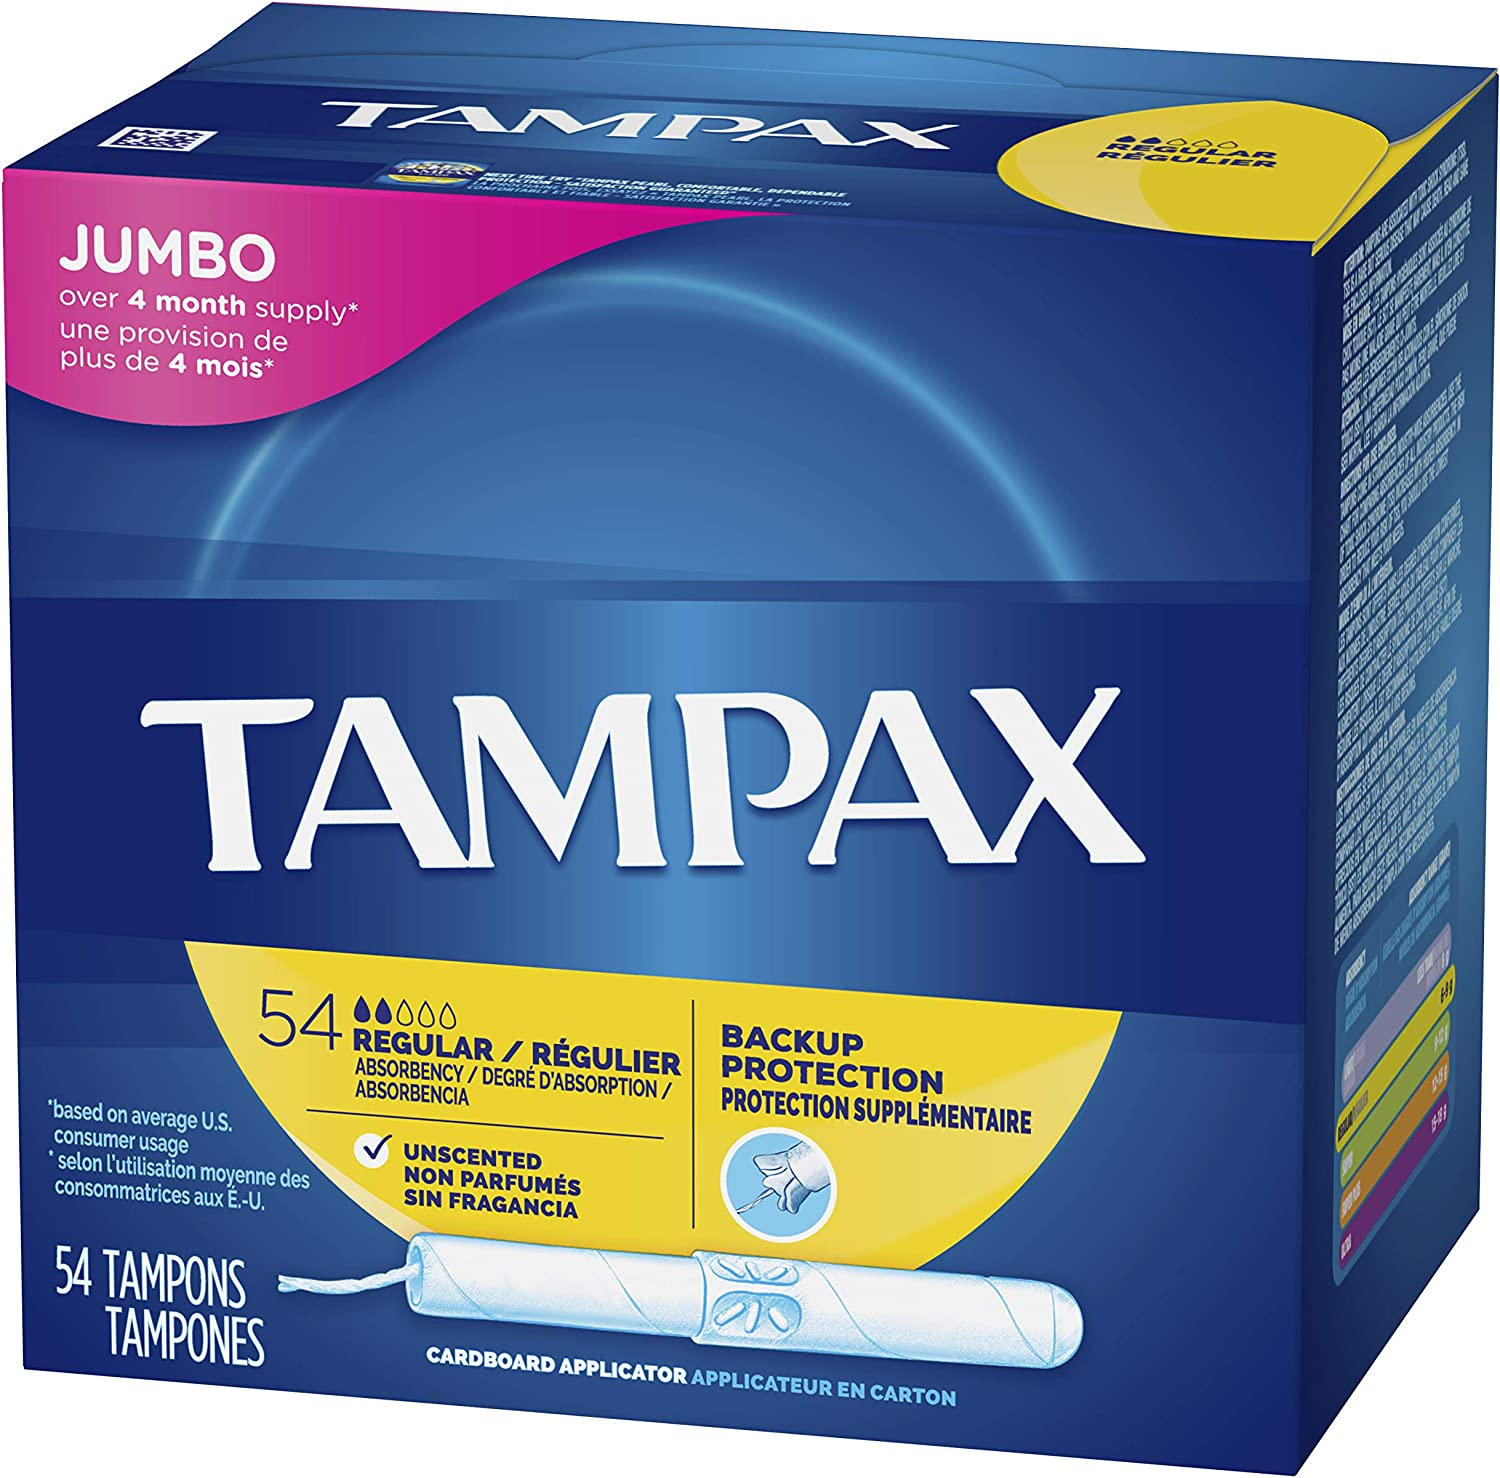 Tampax Cardboard Applicator Tampons, Regular Absorbency, 54 Count - Pack of 2 (108 Total Count): Health & Personal Care